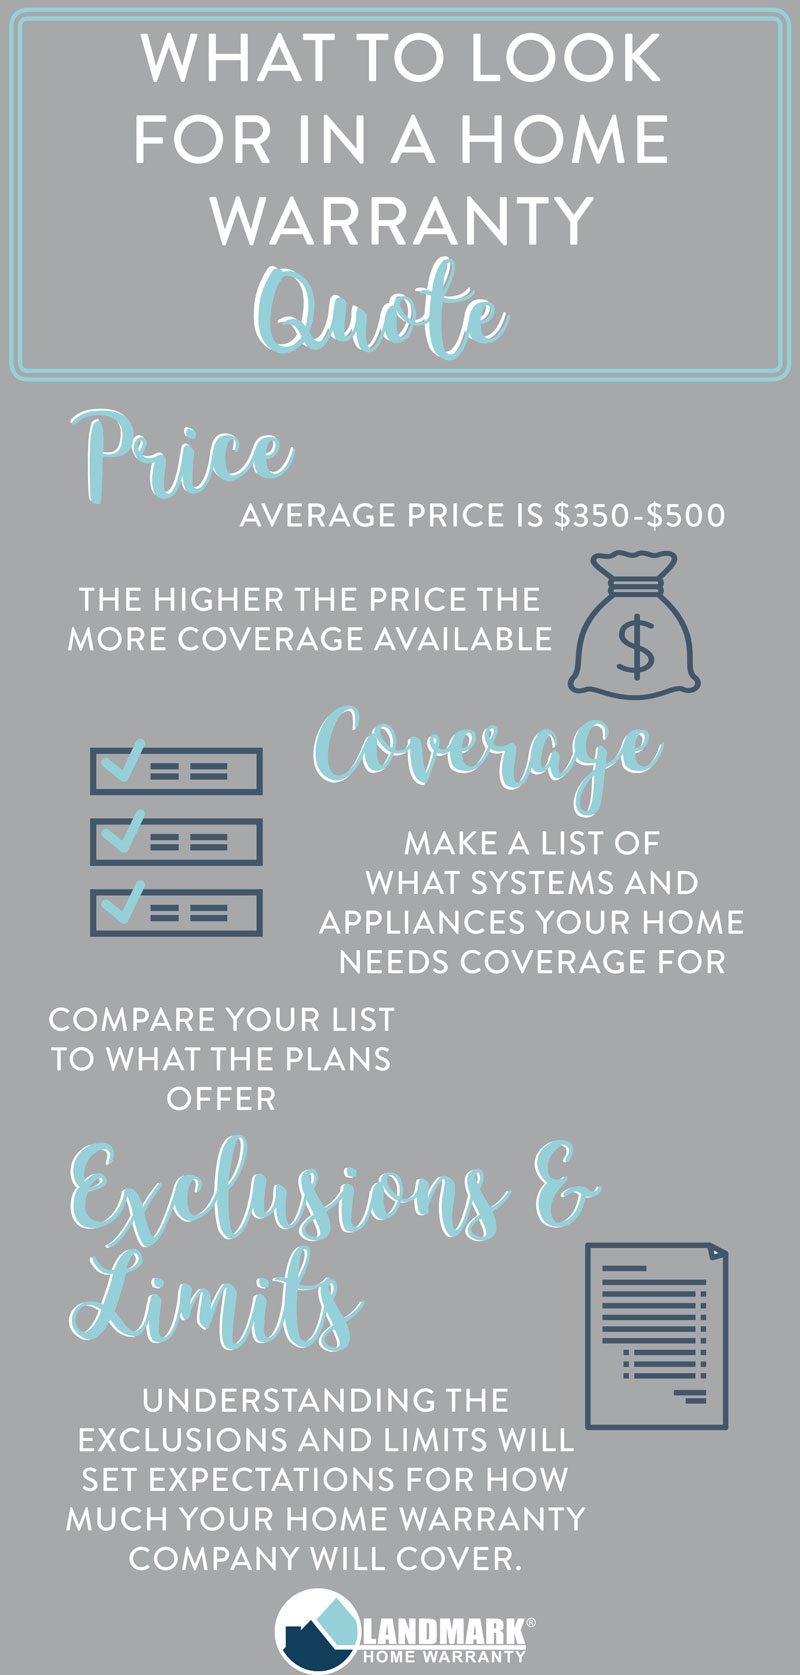 There are four things you should look into when looking for a home warranty quote: price, coverage, exclusions, and limits.